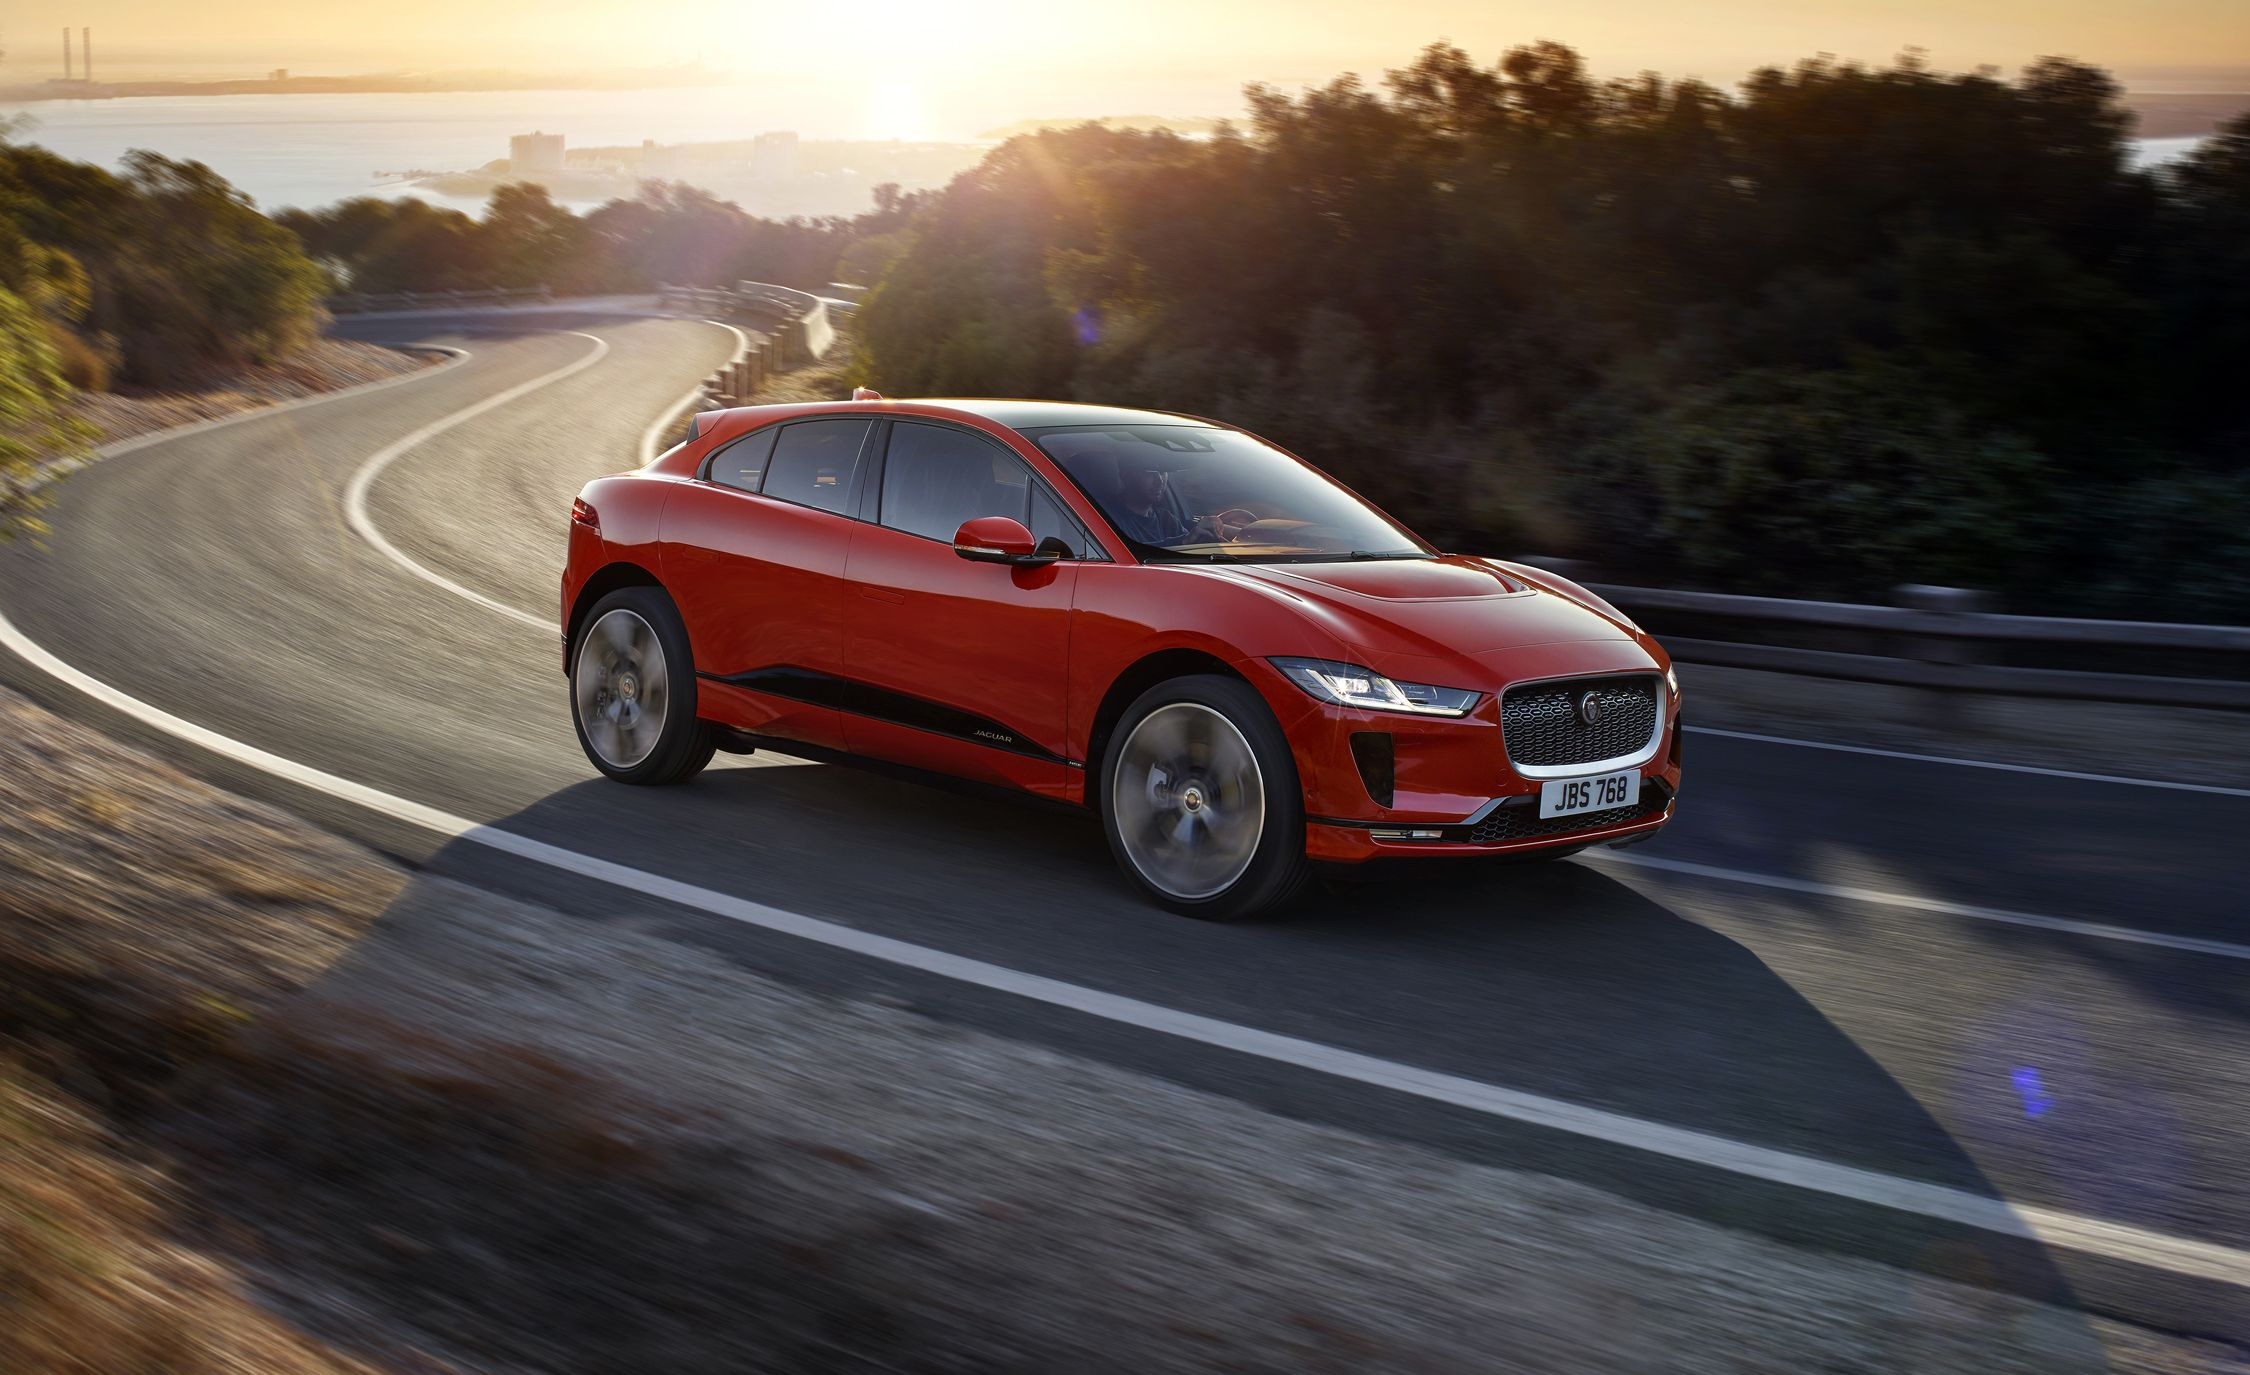 2019 Jaguar I-Pace: The Electric Jag Is Finally Here